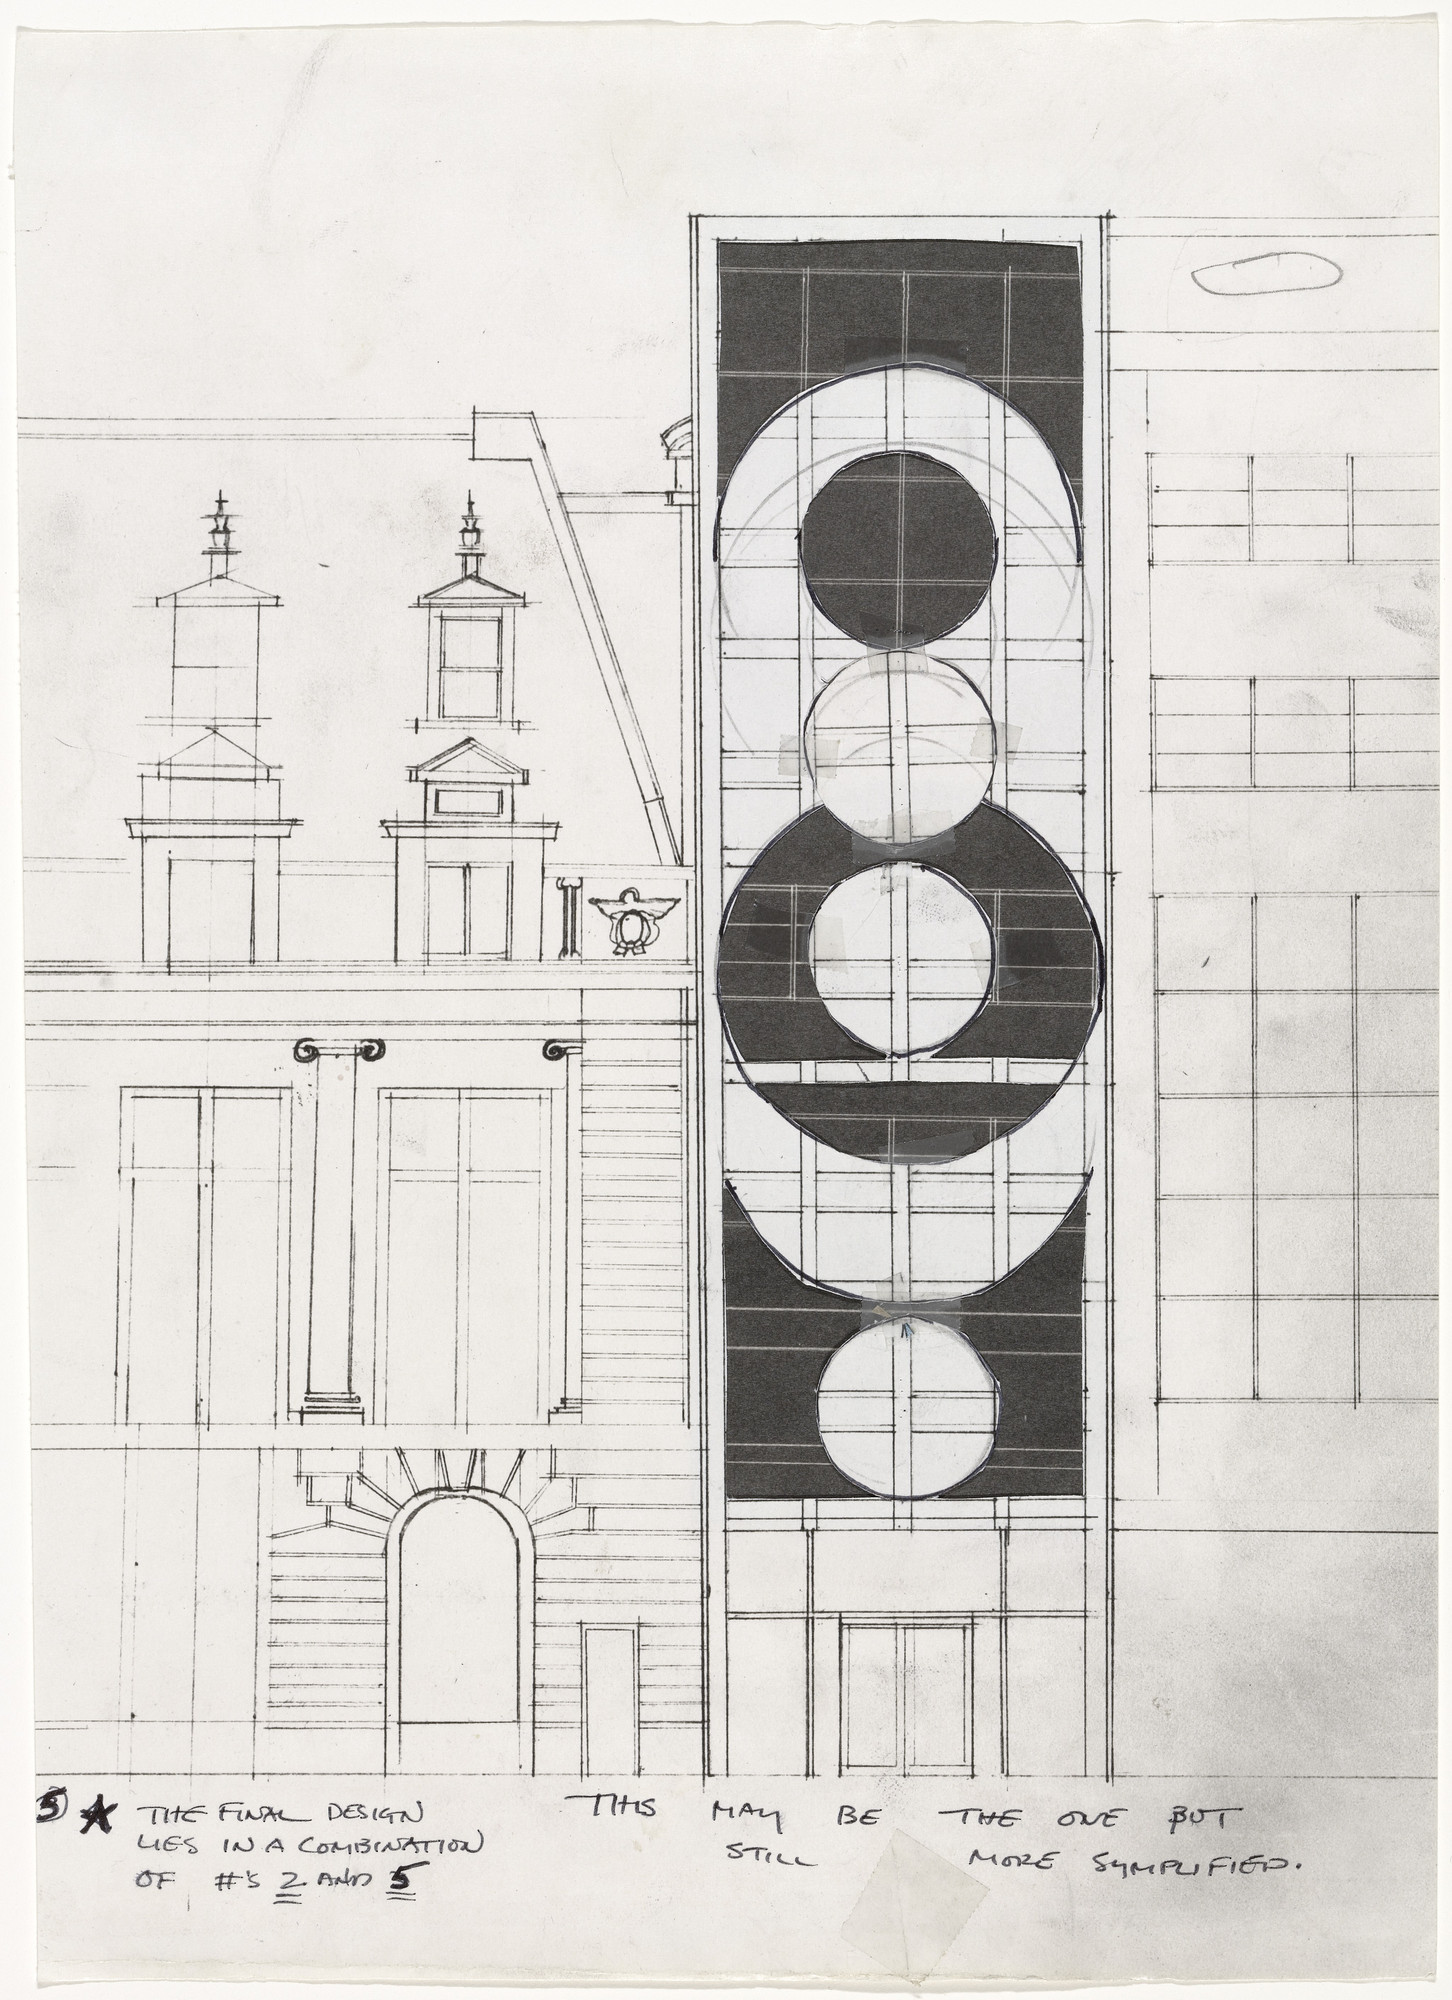 Gordon Matta-Clark. Untitled (Proposal for a Museum of Modern Art Project). (1978)